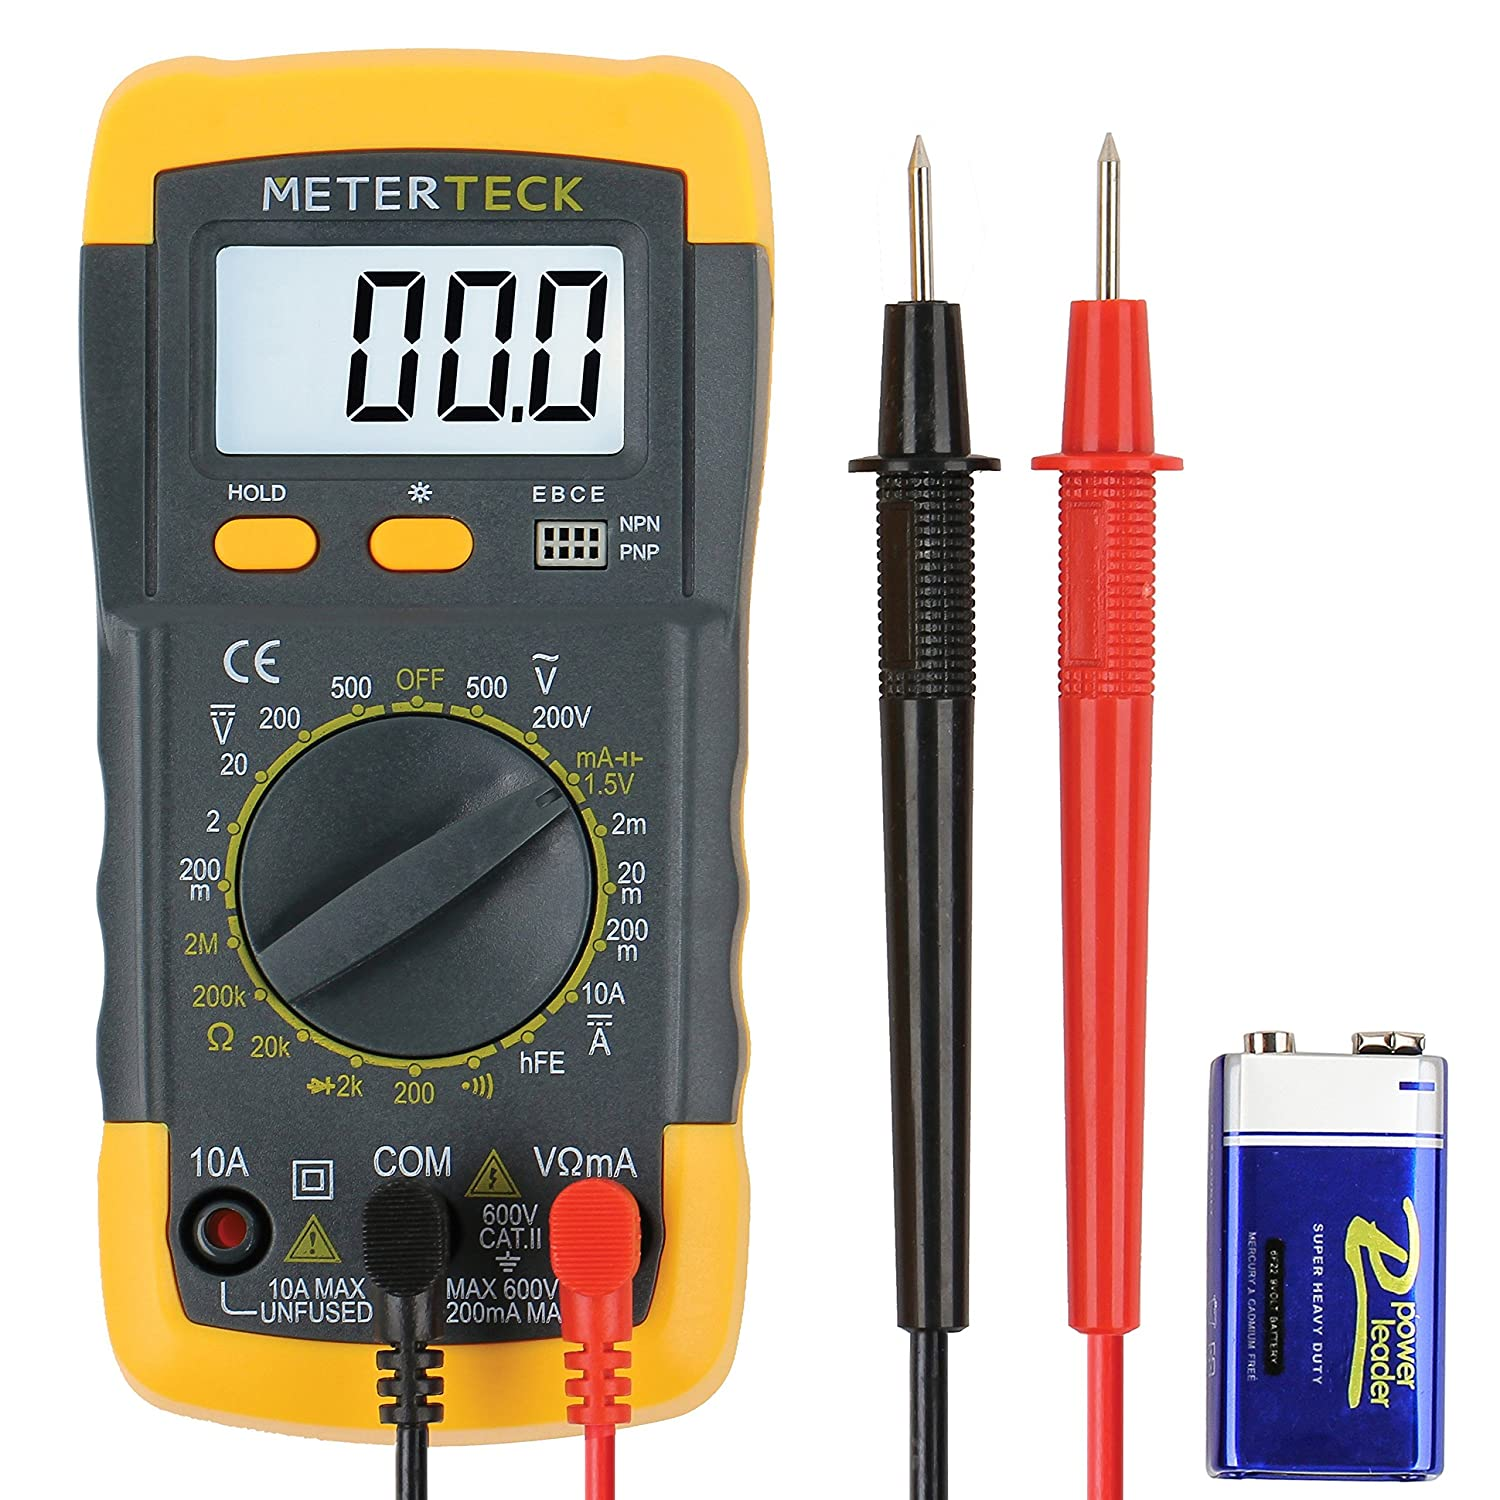 Digital Multimeter Meter Reading : Digital multimeter electrician automotive accurate reading